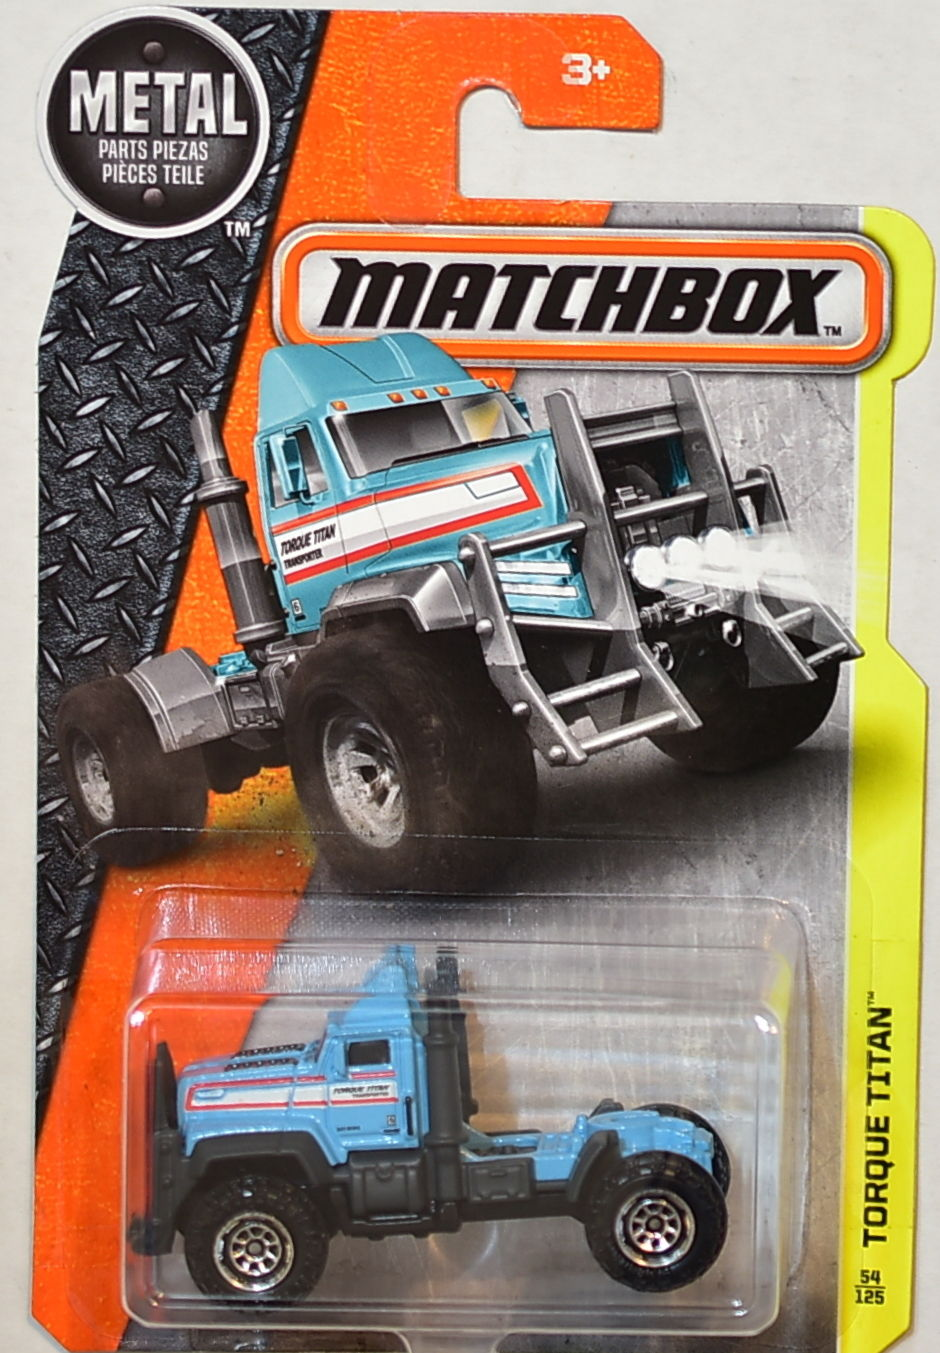 MATCHBOX 2016 METAL PARTS PIEZAS TORQUE TITAN